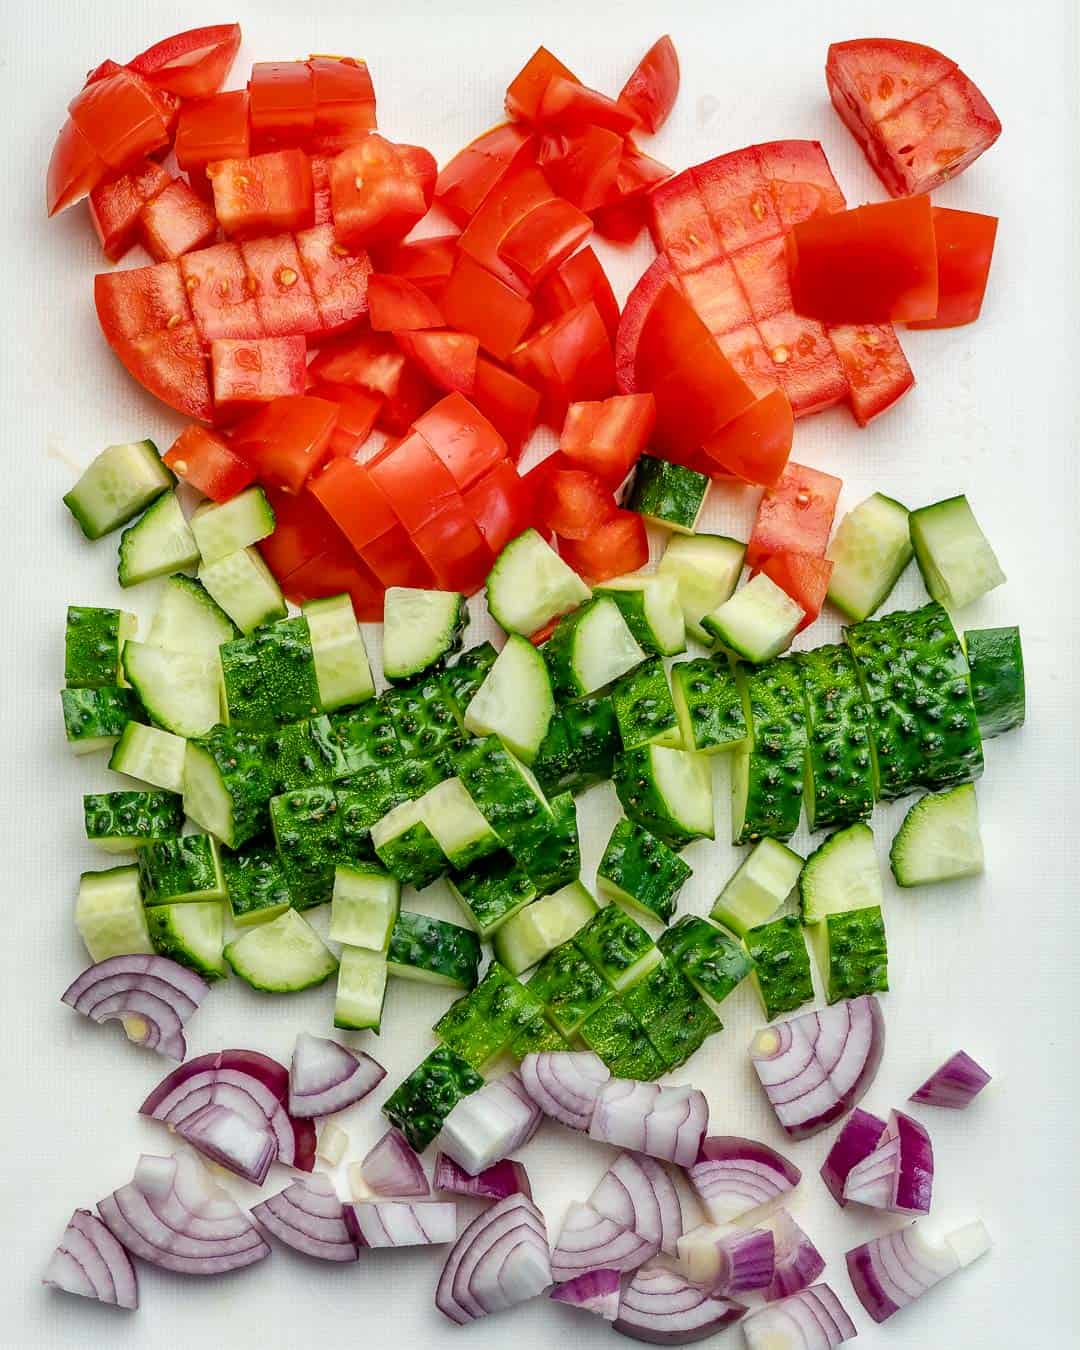 chopped onion, cucumber, and tomatoes on a white board